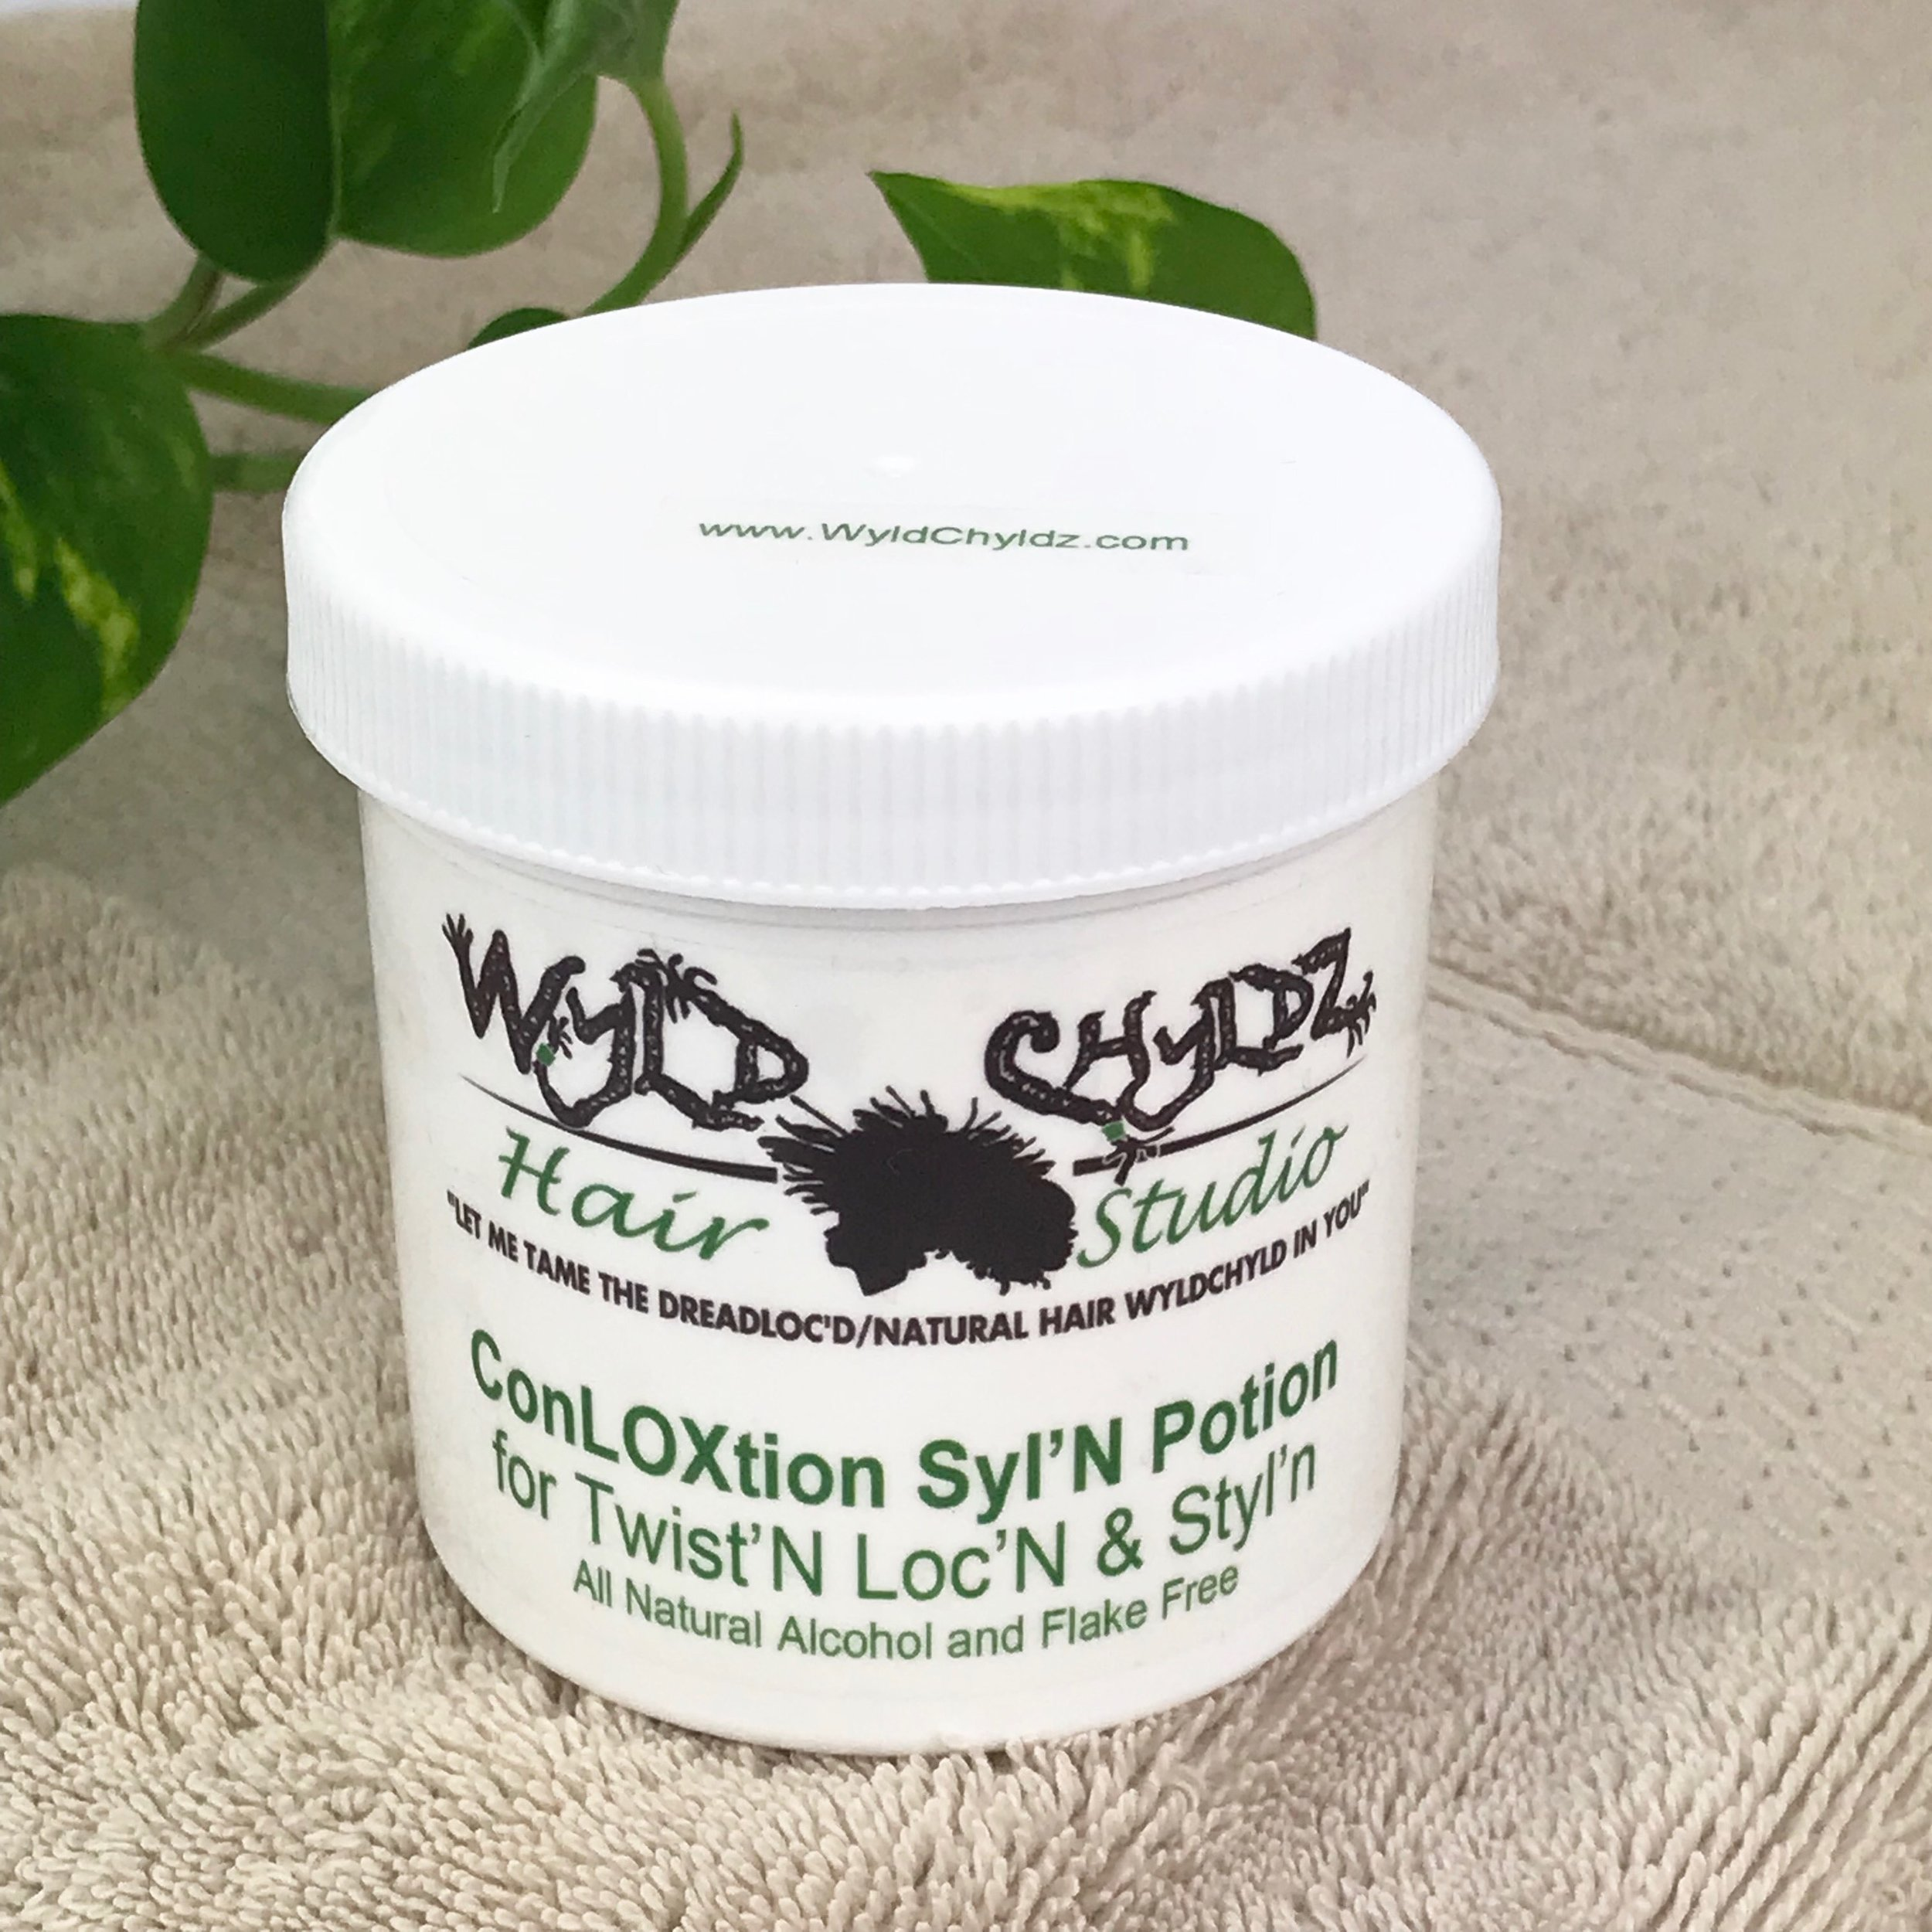 A sample of Wyld Chyldz's product line